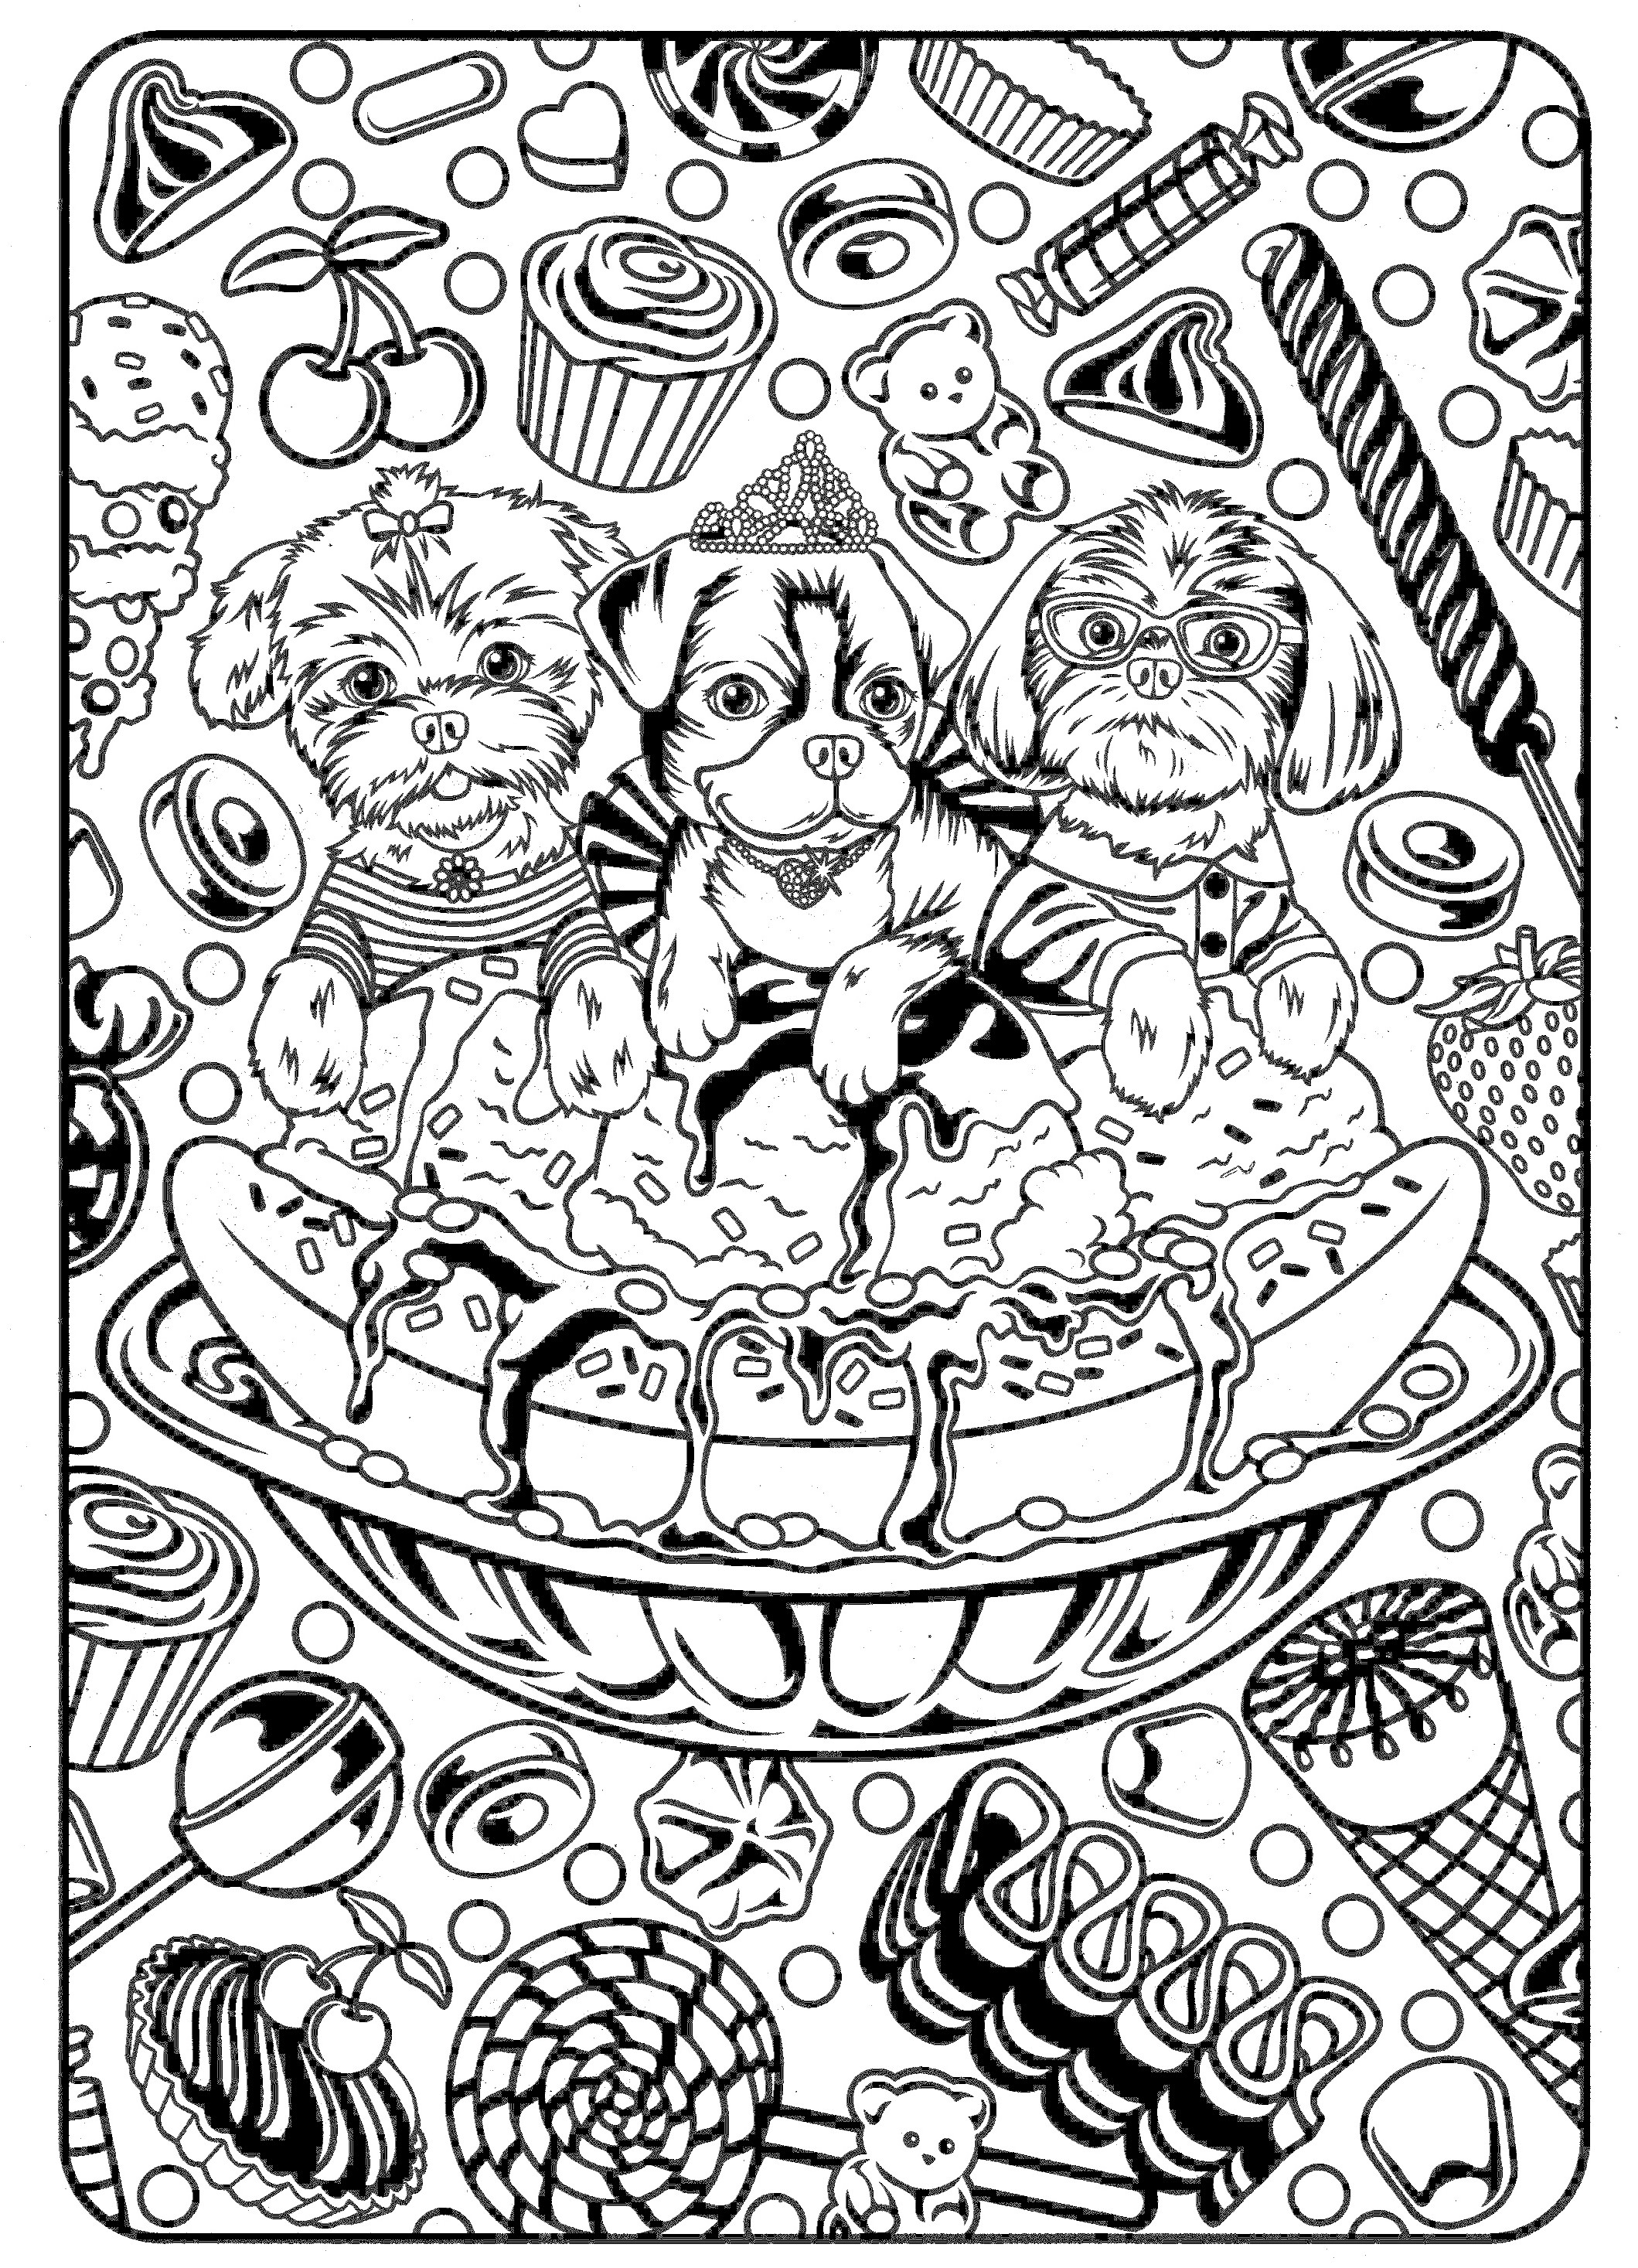 color pages for toddlers zebra coloring pages free printable kids coloring pages toddlers pages color for